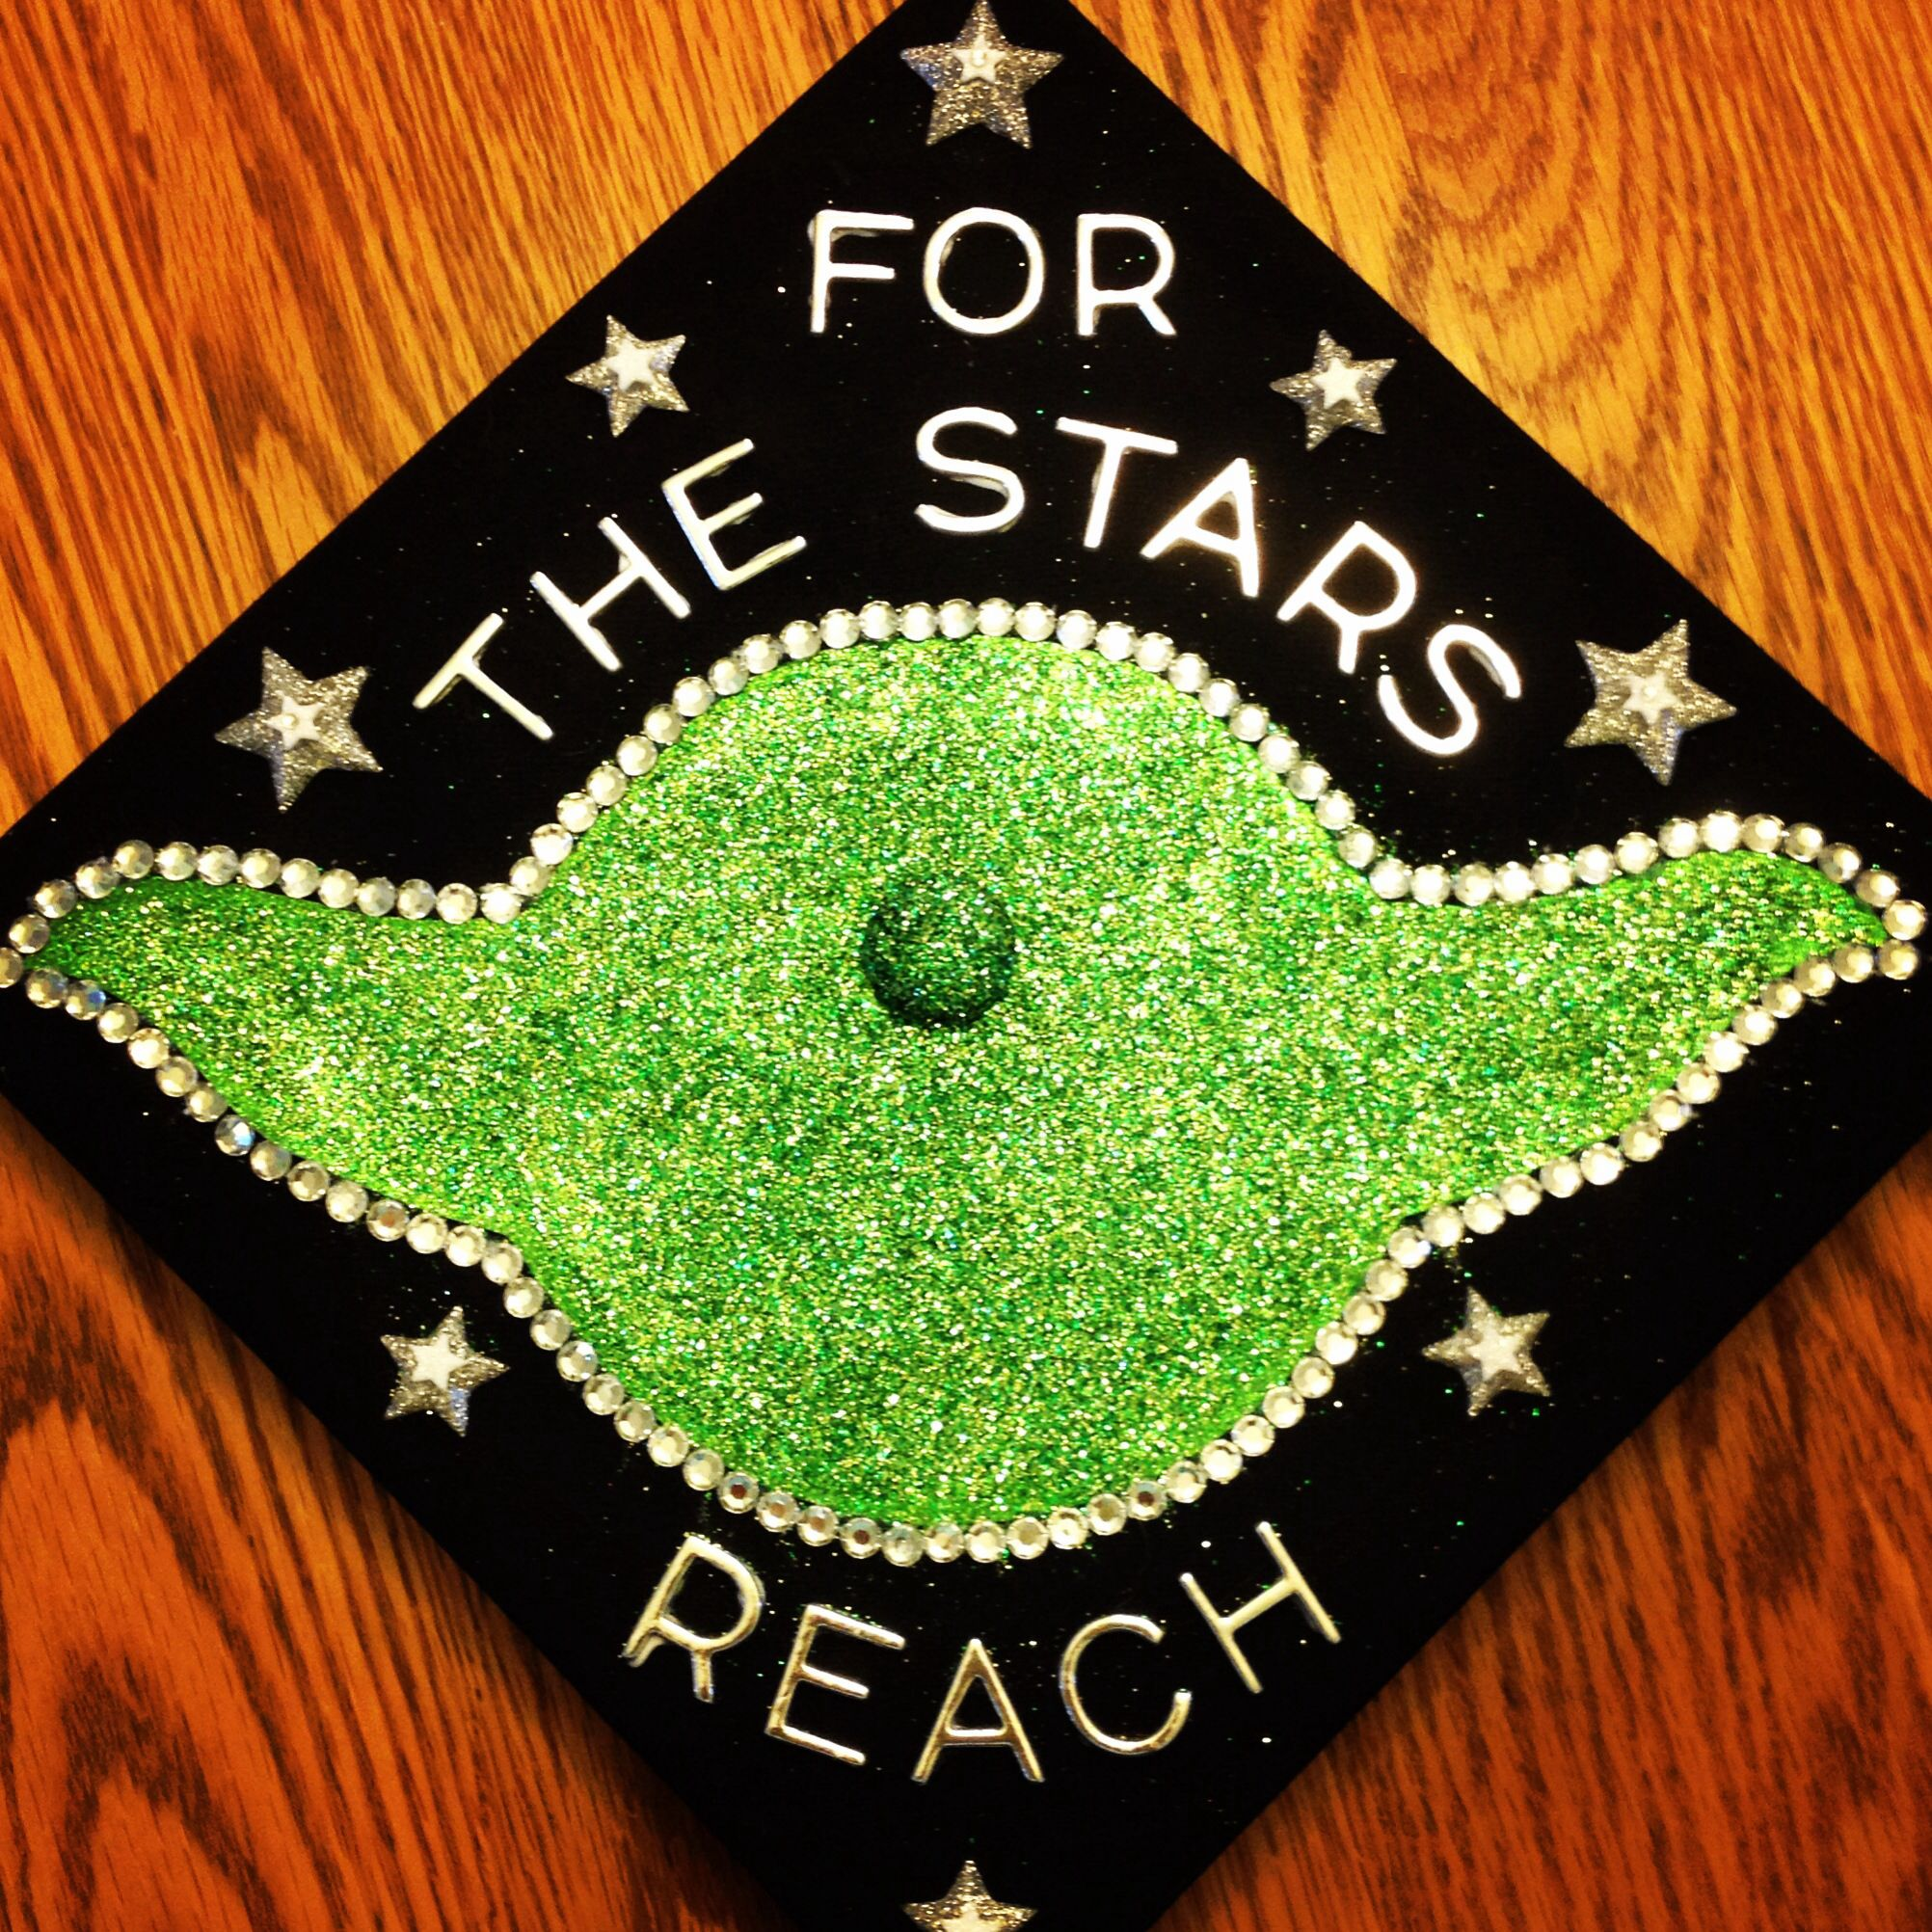 Ucf graduation cap decoration graduation pinterest for Graduation decorations